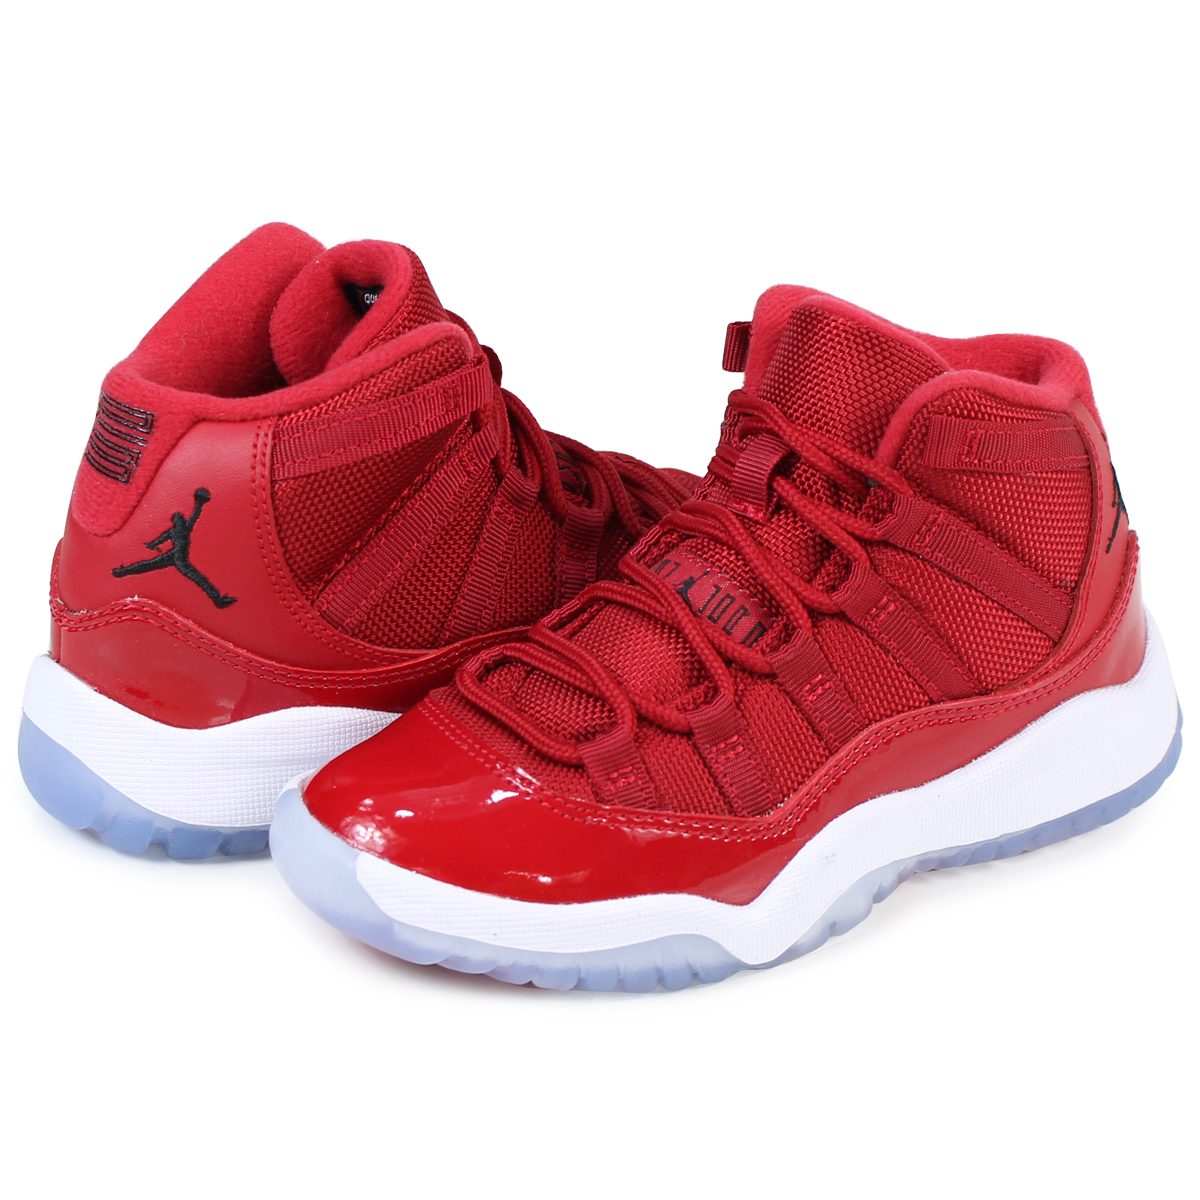 ALLSPORTS: NIKE AIR JORDAN 11 BP WIN LIKE 96 Nike Air ...